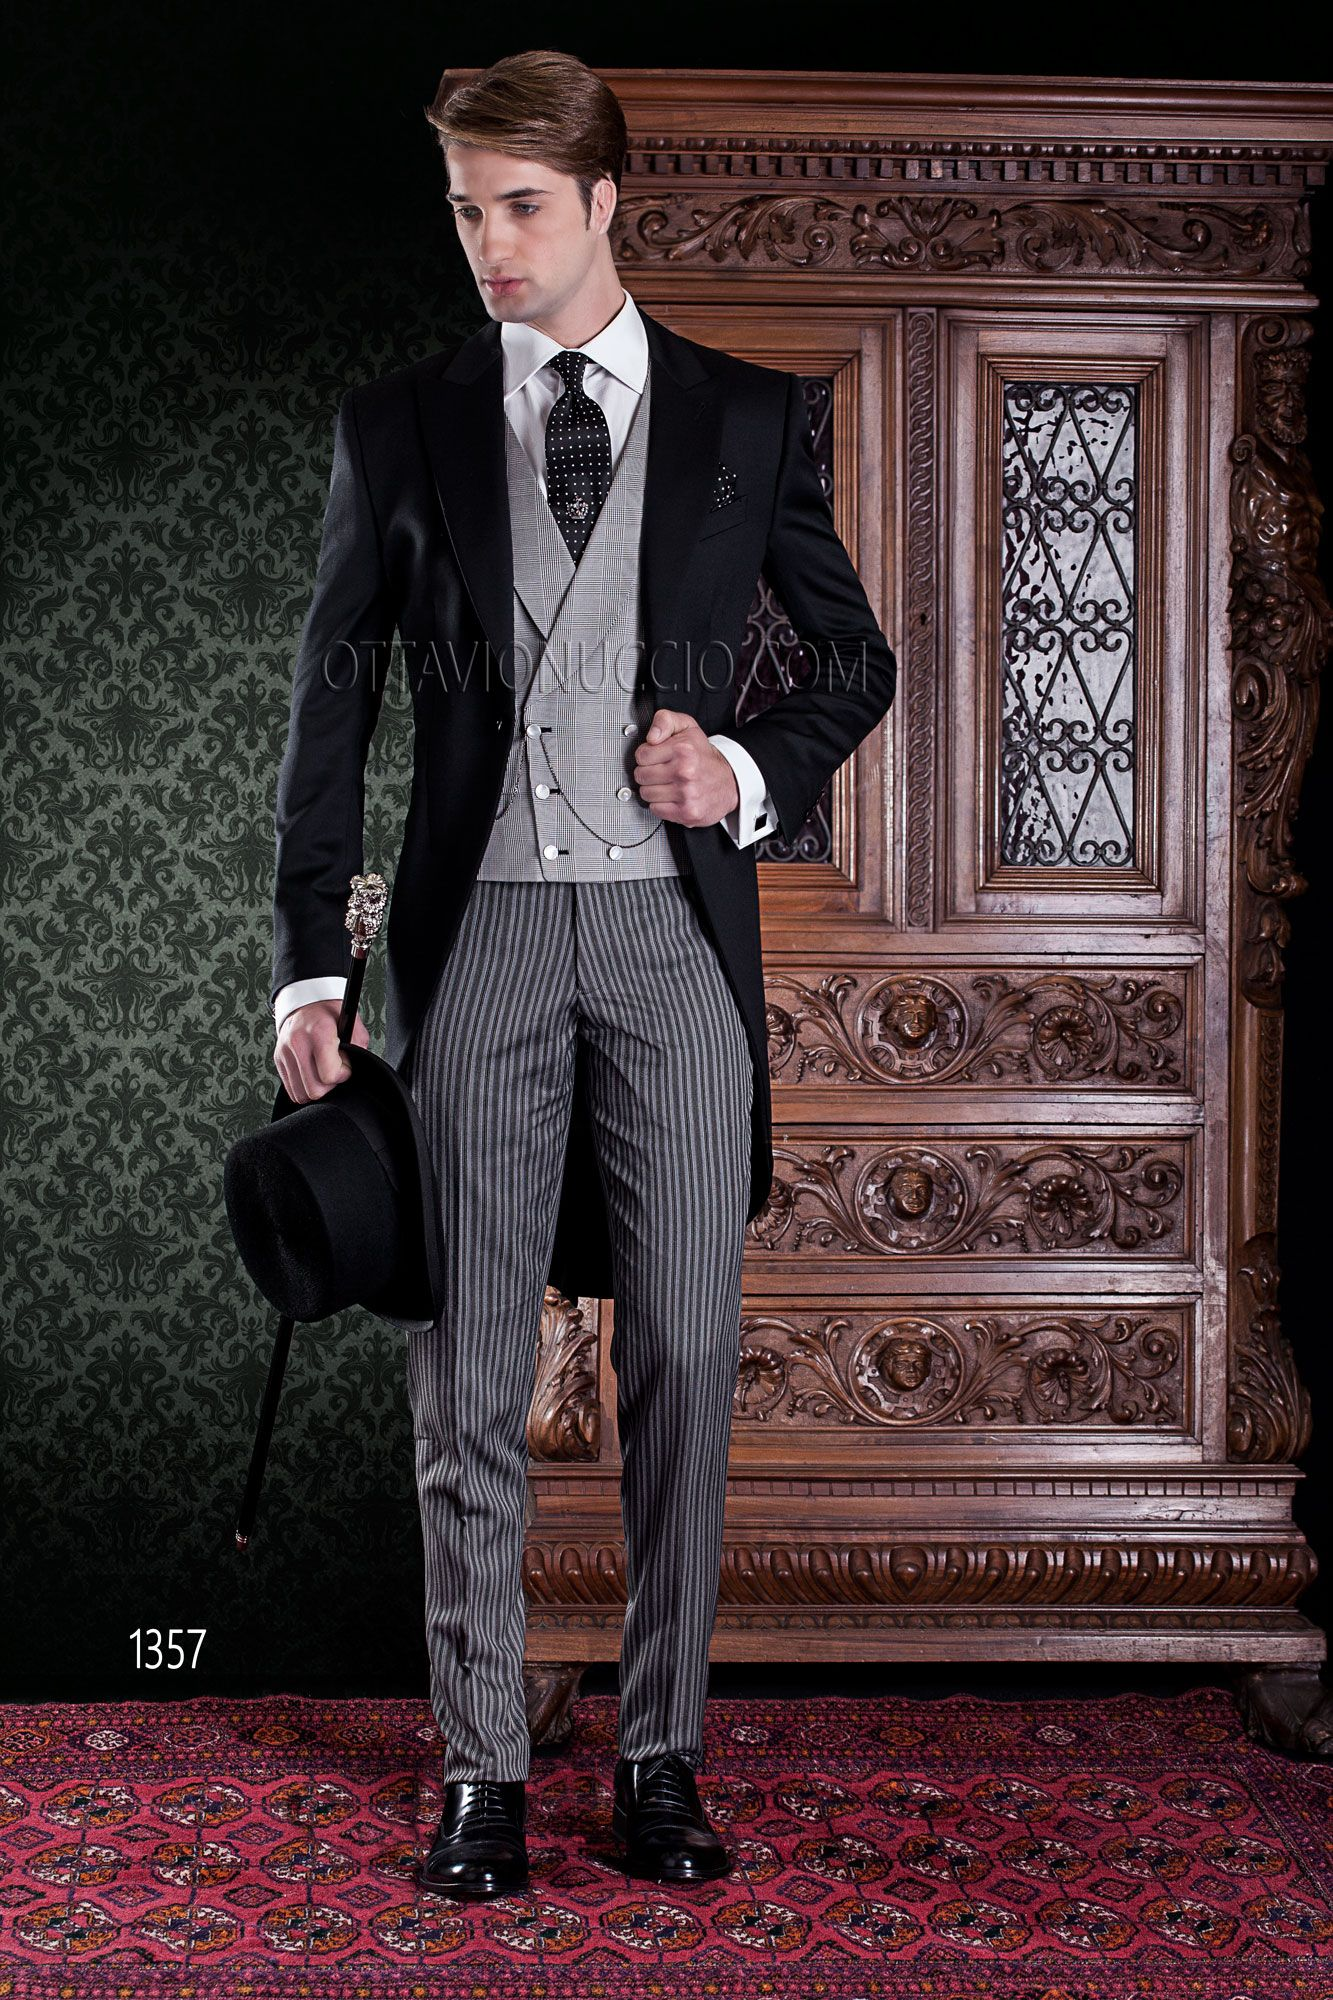 BLACK GREY STRIPE MORNING TROUSERS PINSTRIPE FOR WEDDING DRESS TAILCOAT TAILS